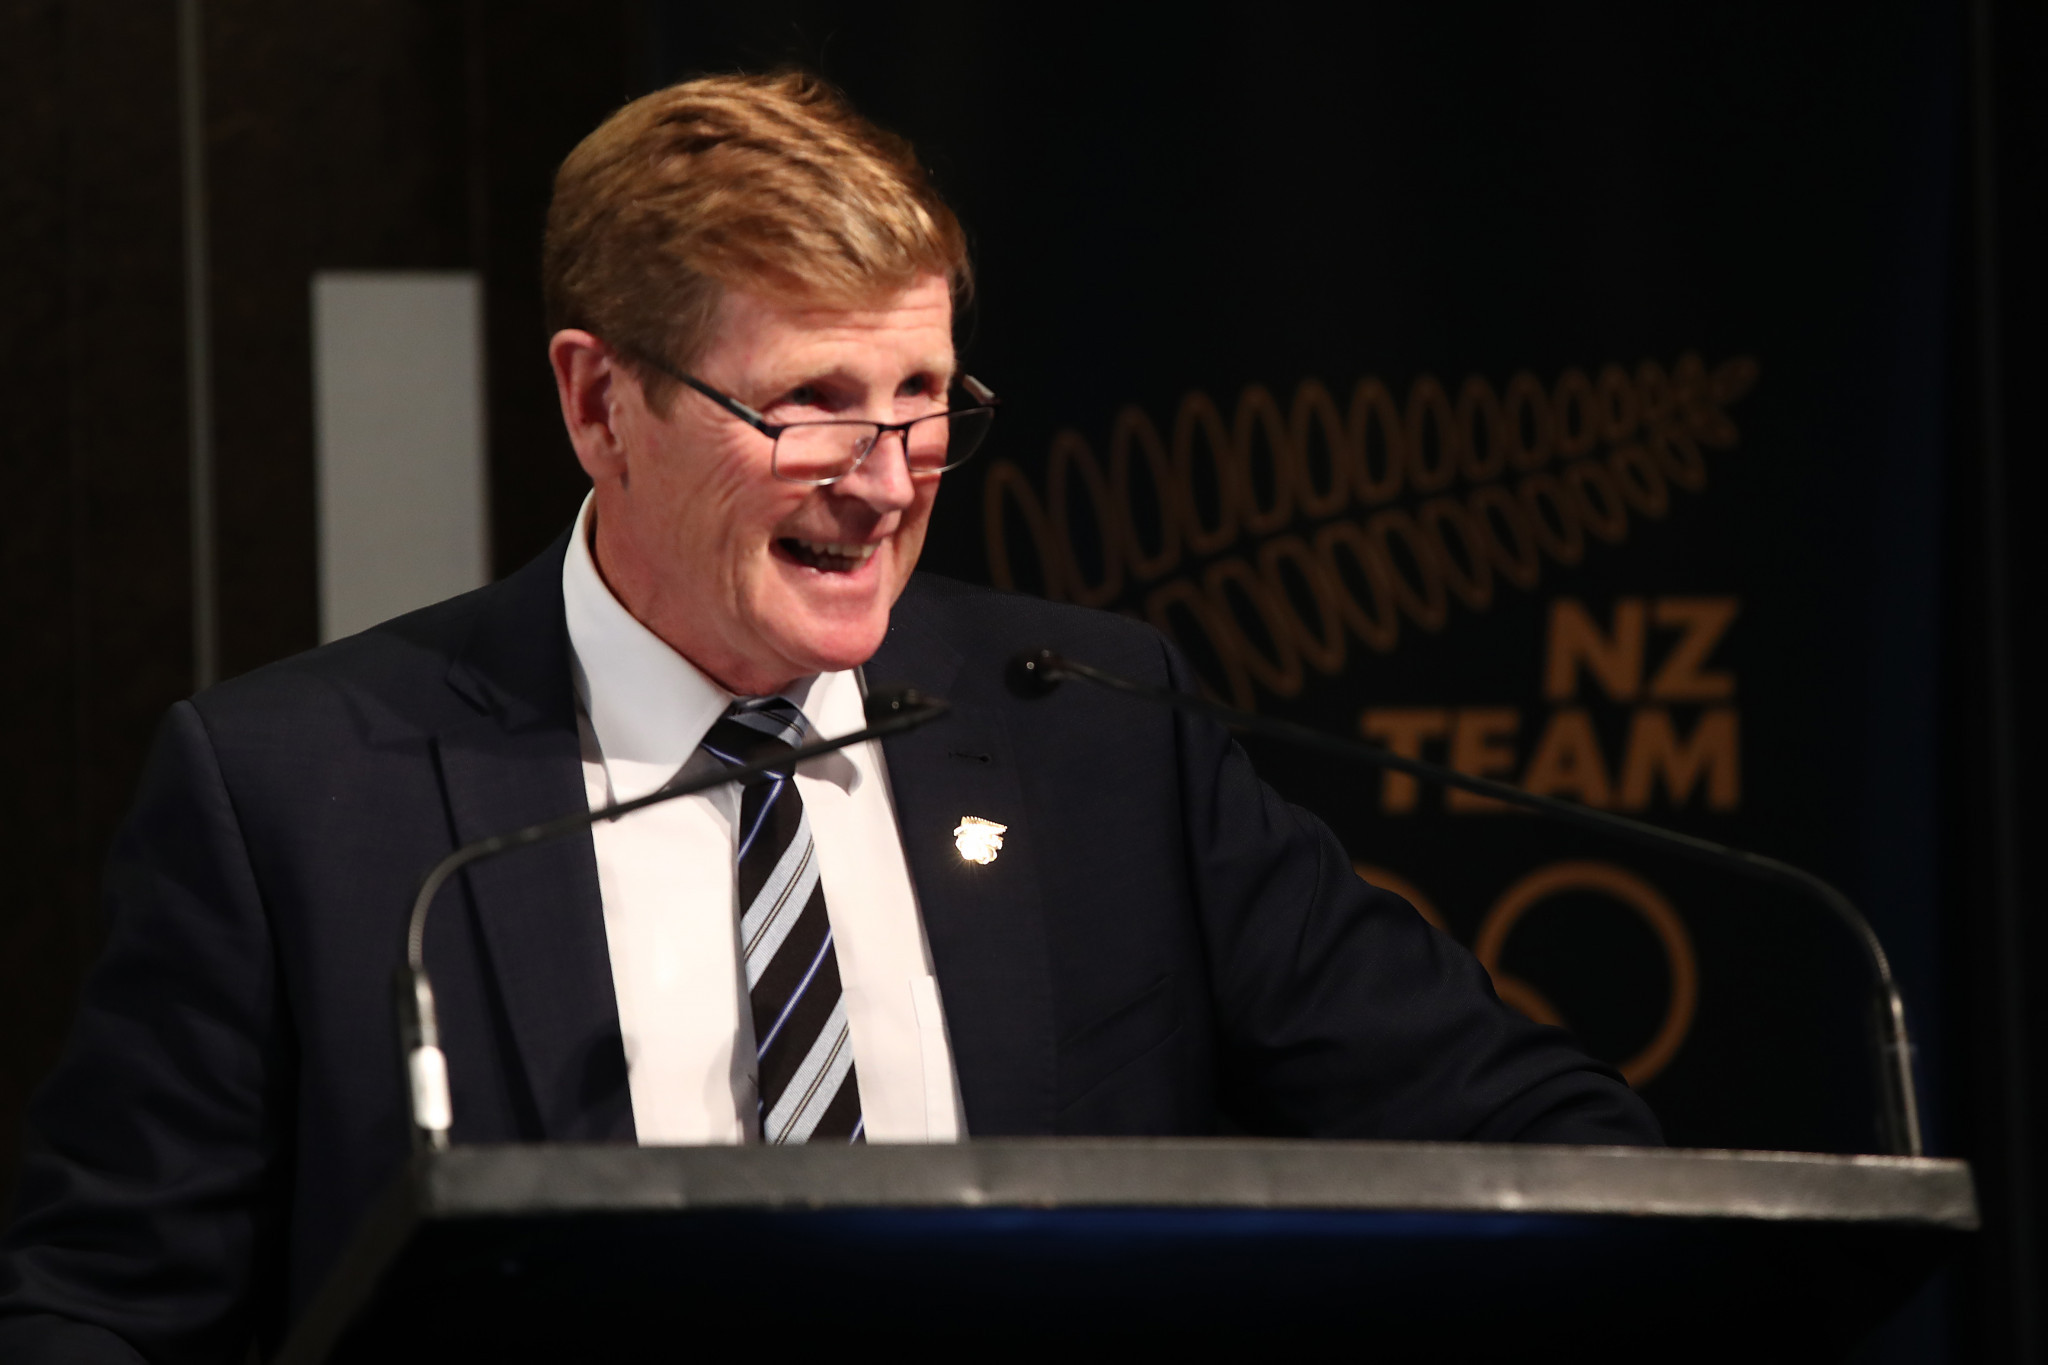 New Zealand Olympic Committee President acknowledges successful year as 2018 annual report presented